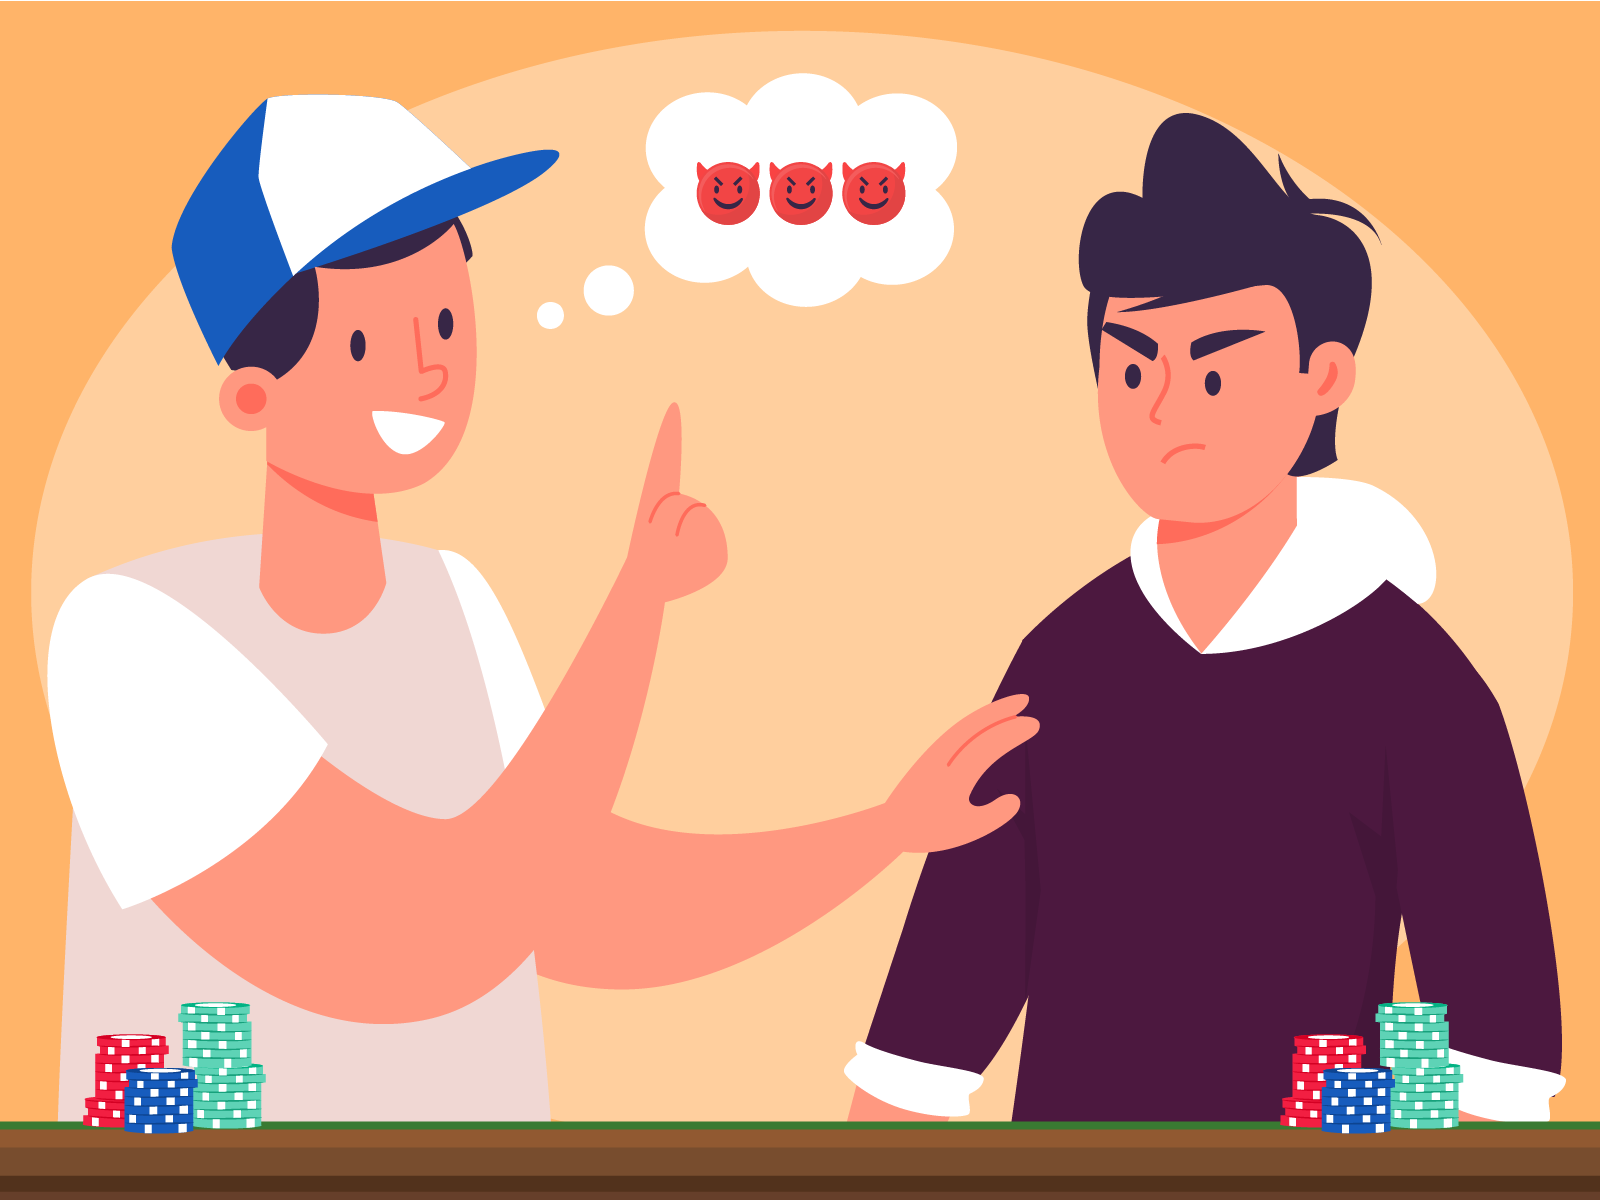 Person giving advice in poker, with bad intentions